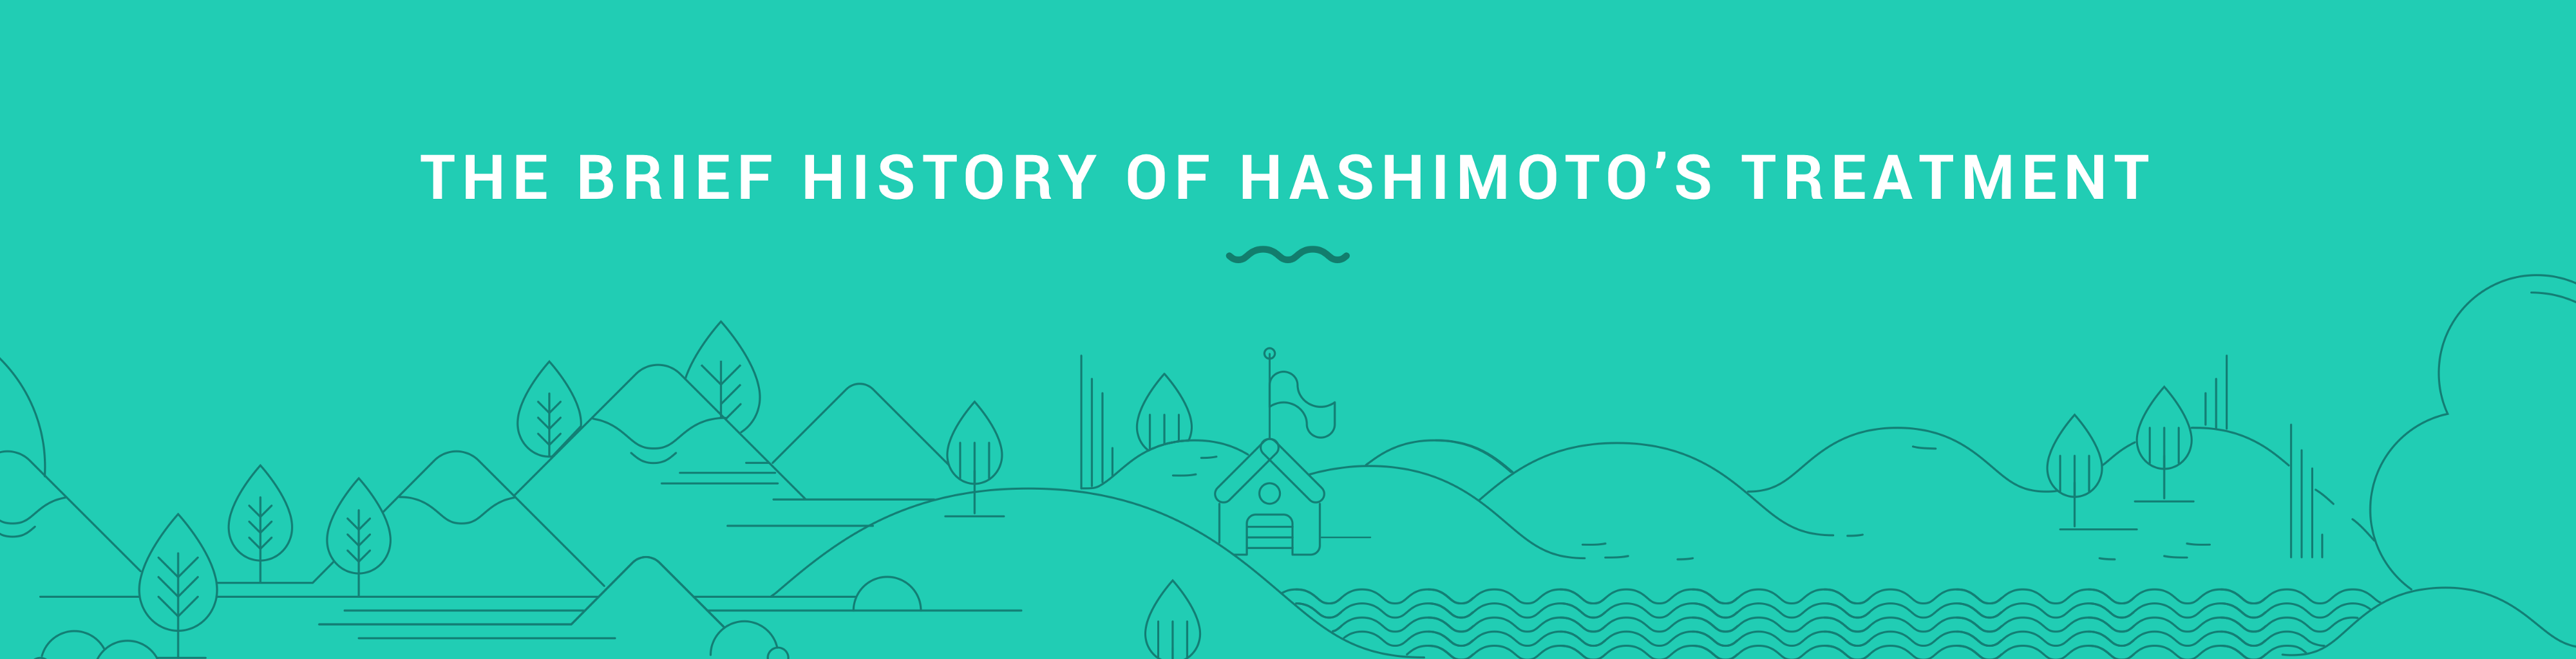 helminthic therapy hashimotos